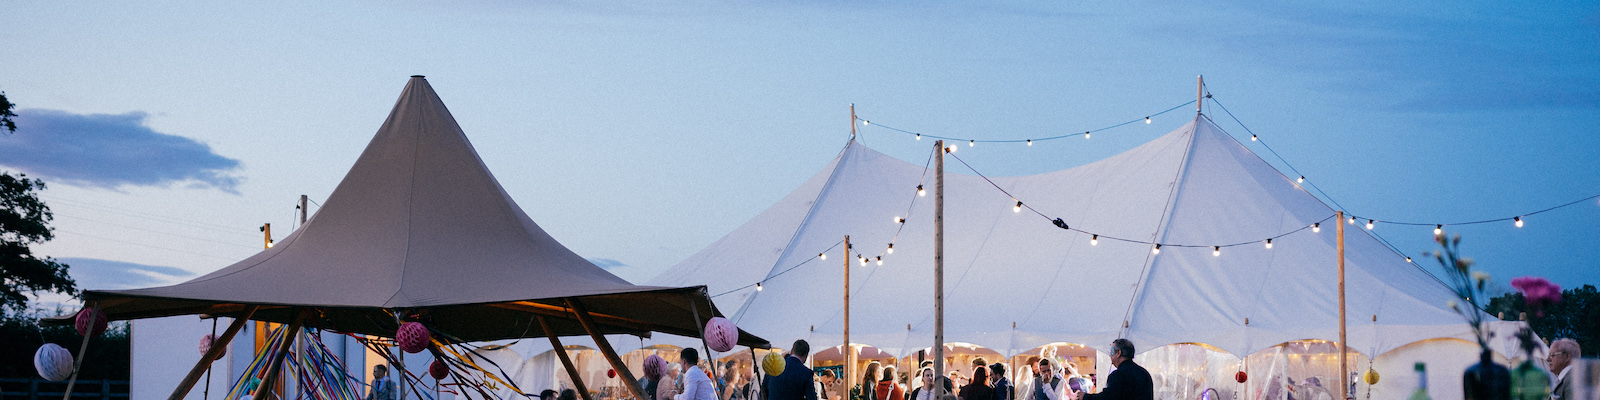 Pretty Petal 9m x 15m festival tents - Wedding Day Photos